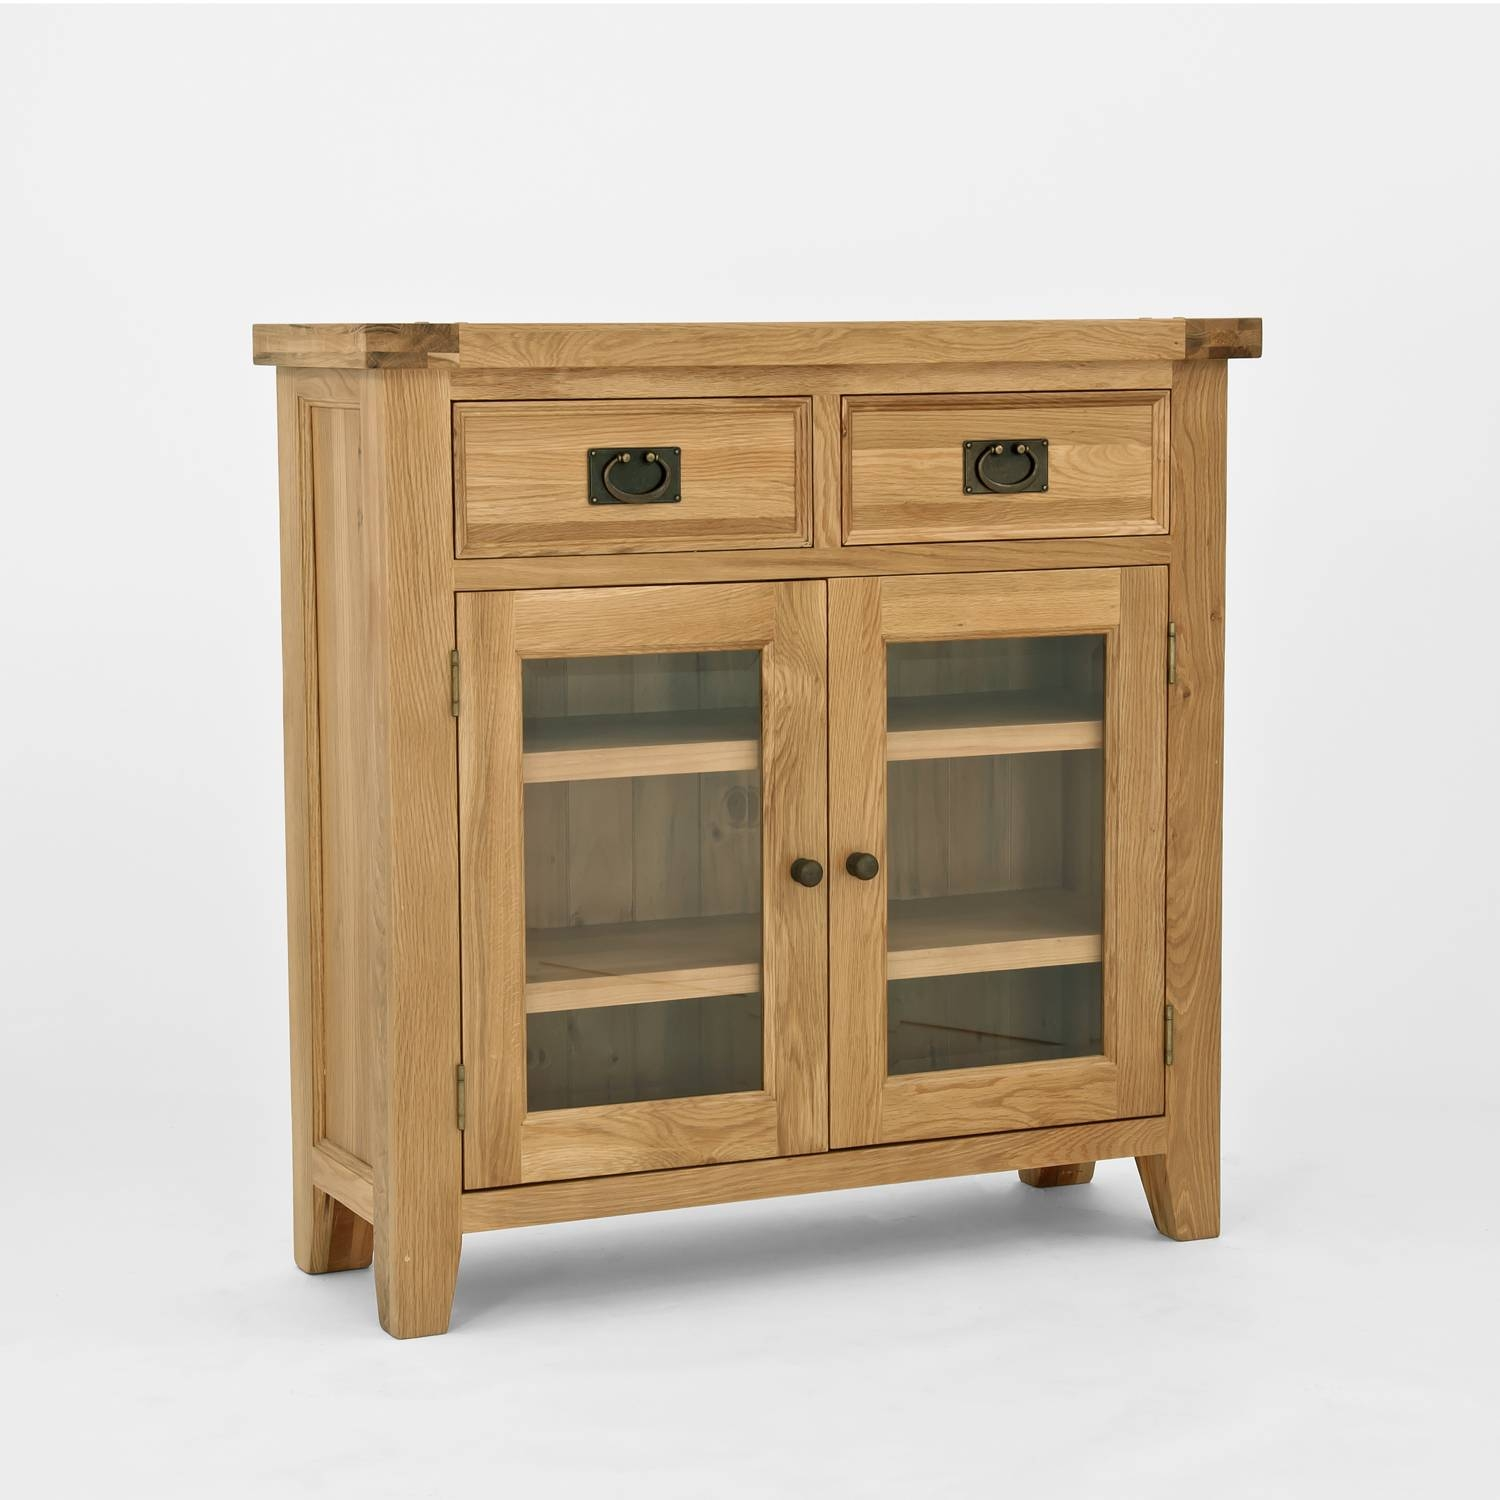 Small Bookcase With Glass Doors : Doherty House – Choosing Intended For Newest Sideboards With Glass Doors And Drawers (#14 of 15)